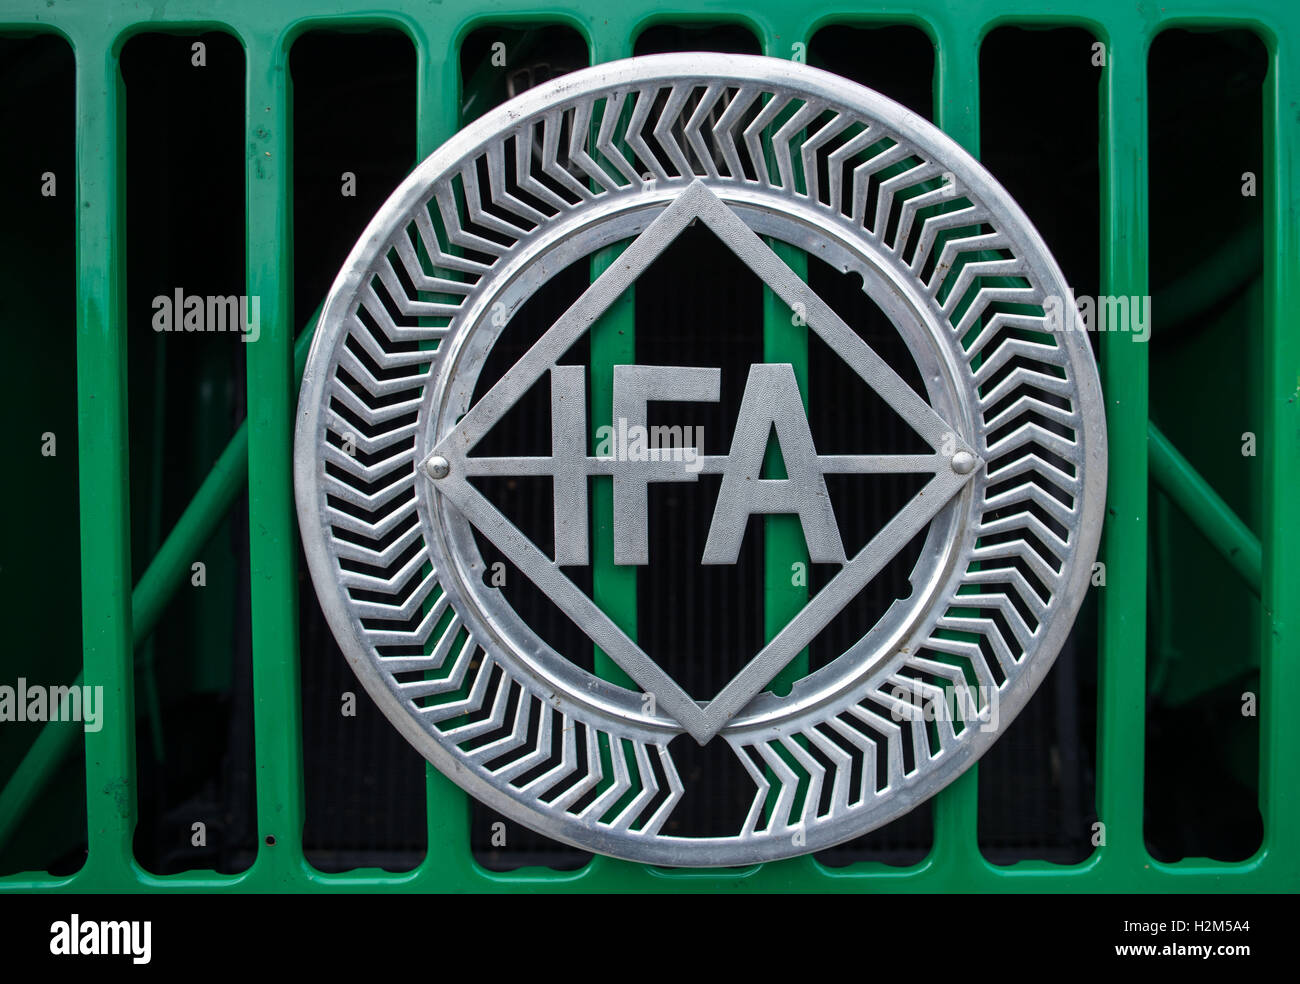 Schwerin, Germany. 30th Sep, 2016. The type sign 'IFA' can be seen on a radiator grille of a truck of the - Stock Image